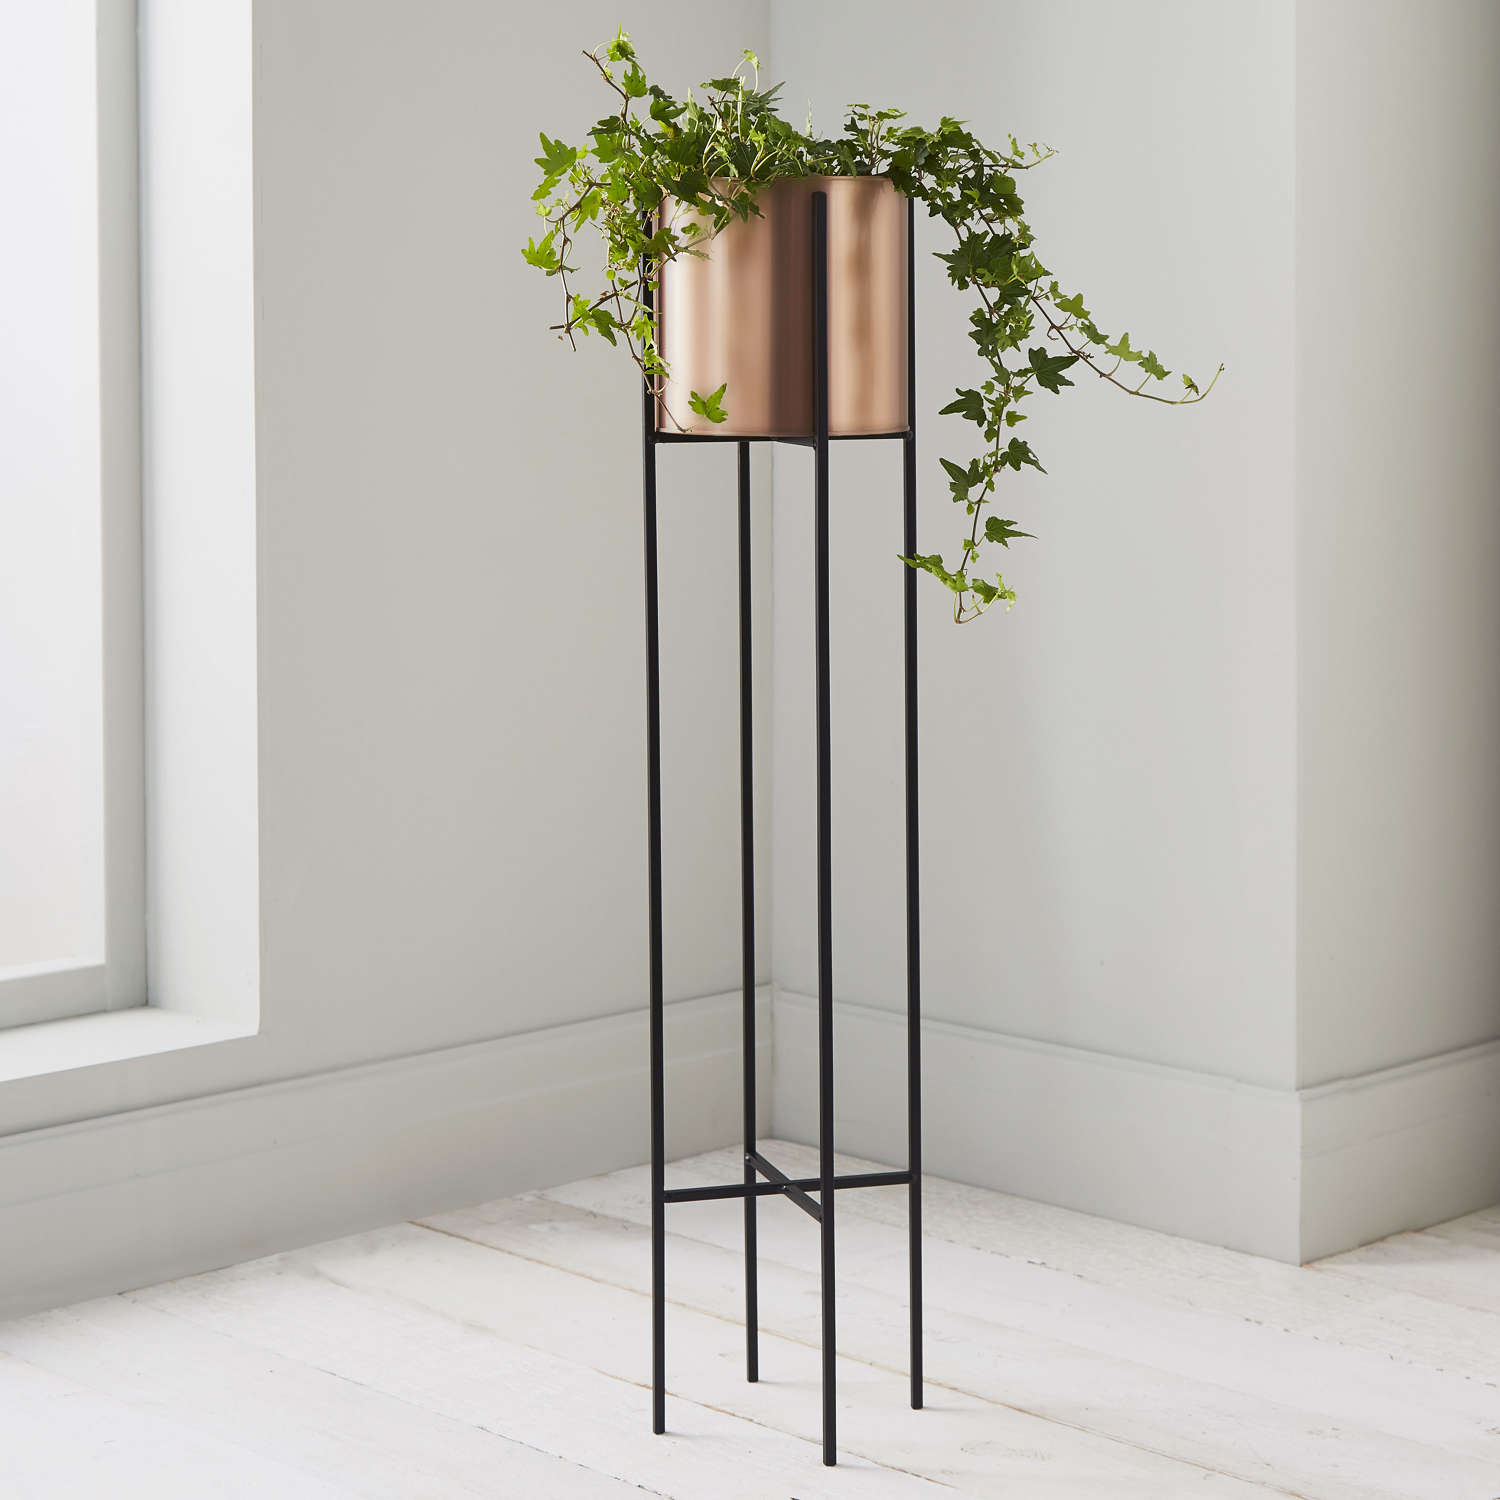 Round copper plant holder in black metal stand